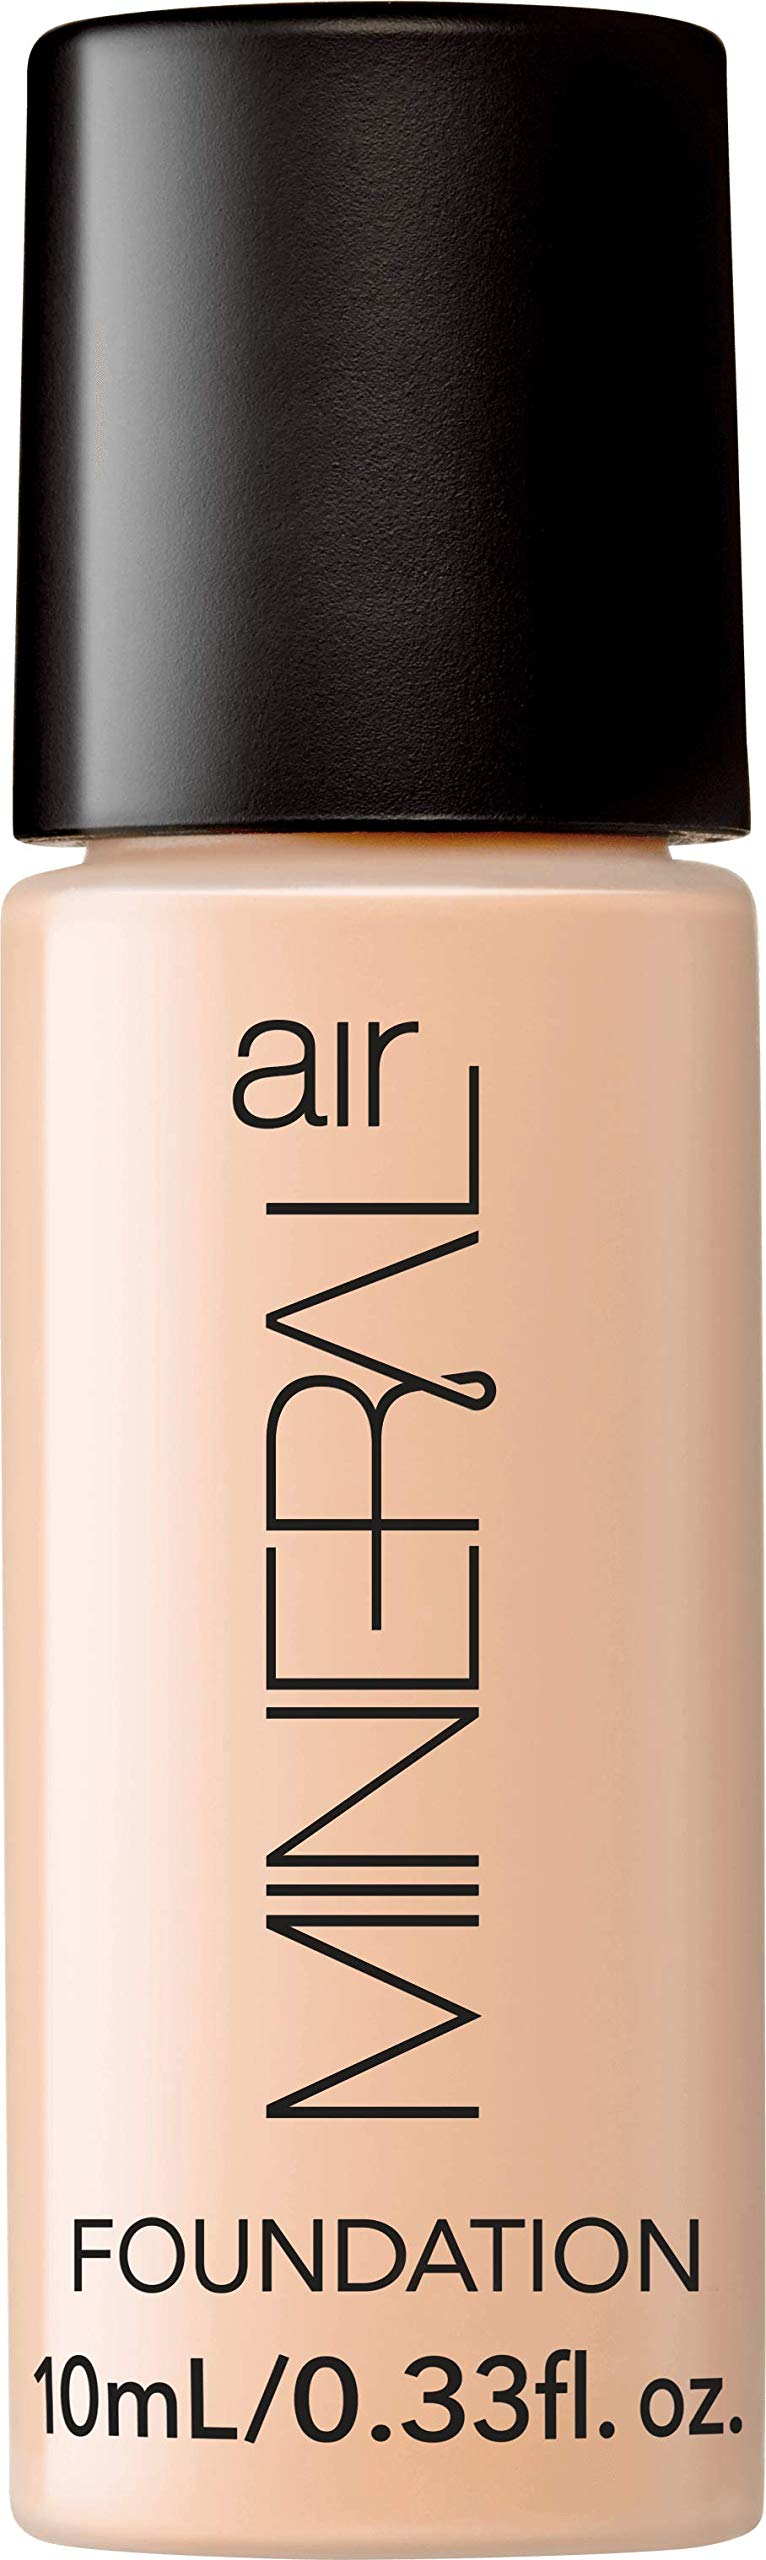 Mineral Air Four-in-One Foundation for Mineral Air Mist Device—Color, 10 ml, Travel Size - Porcelain